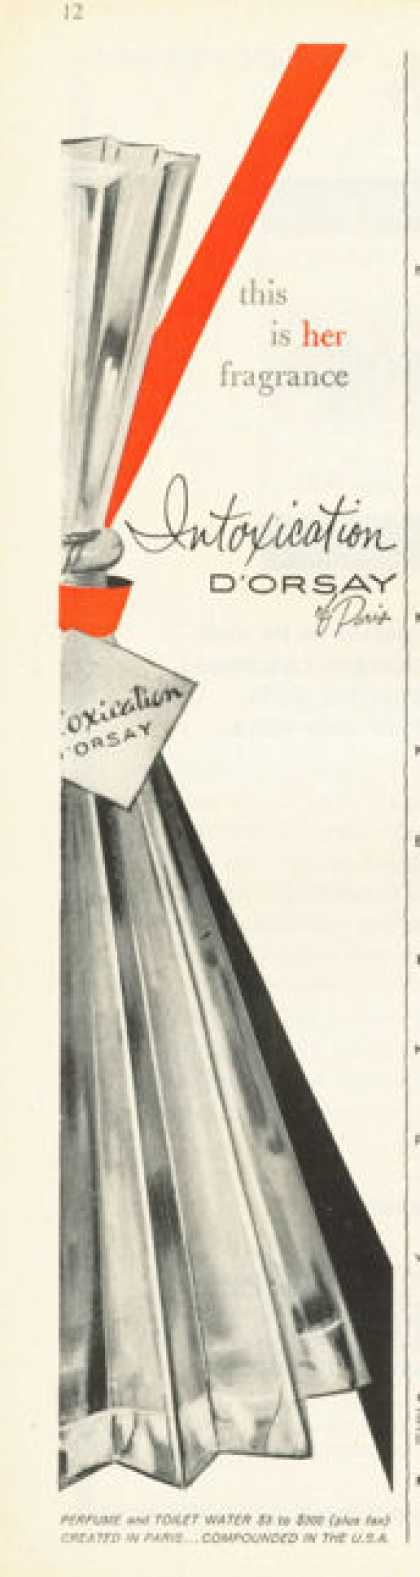 D'orsay of Paris Intoxication Perfume (1958)